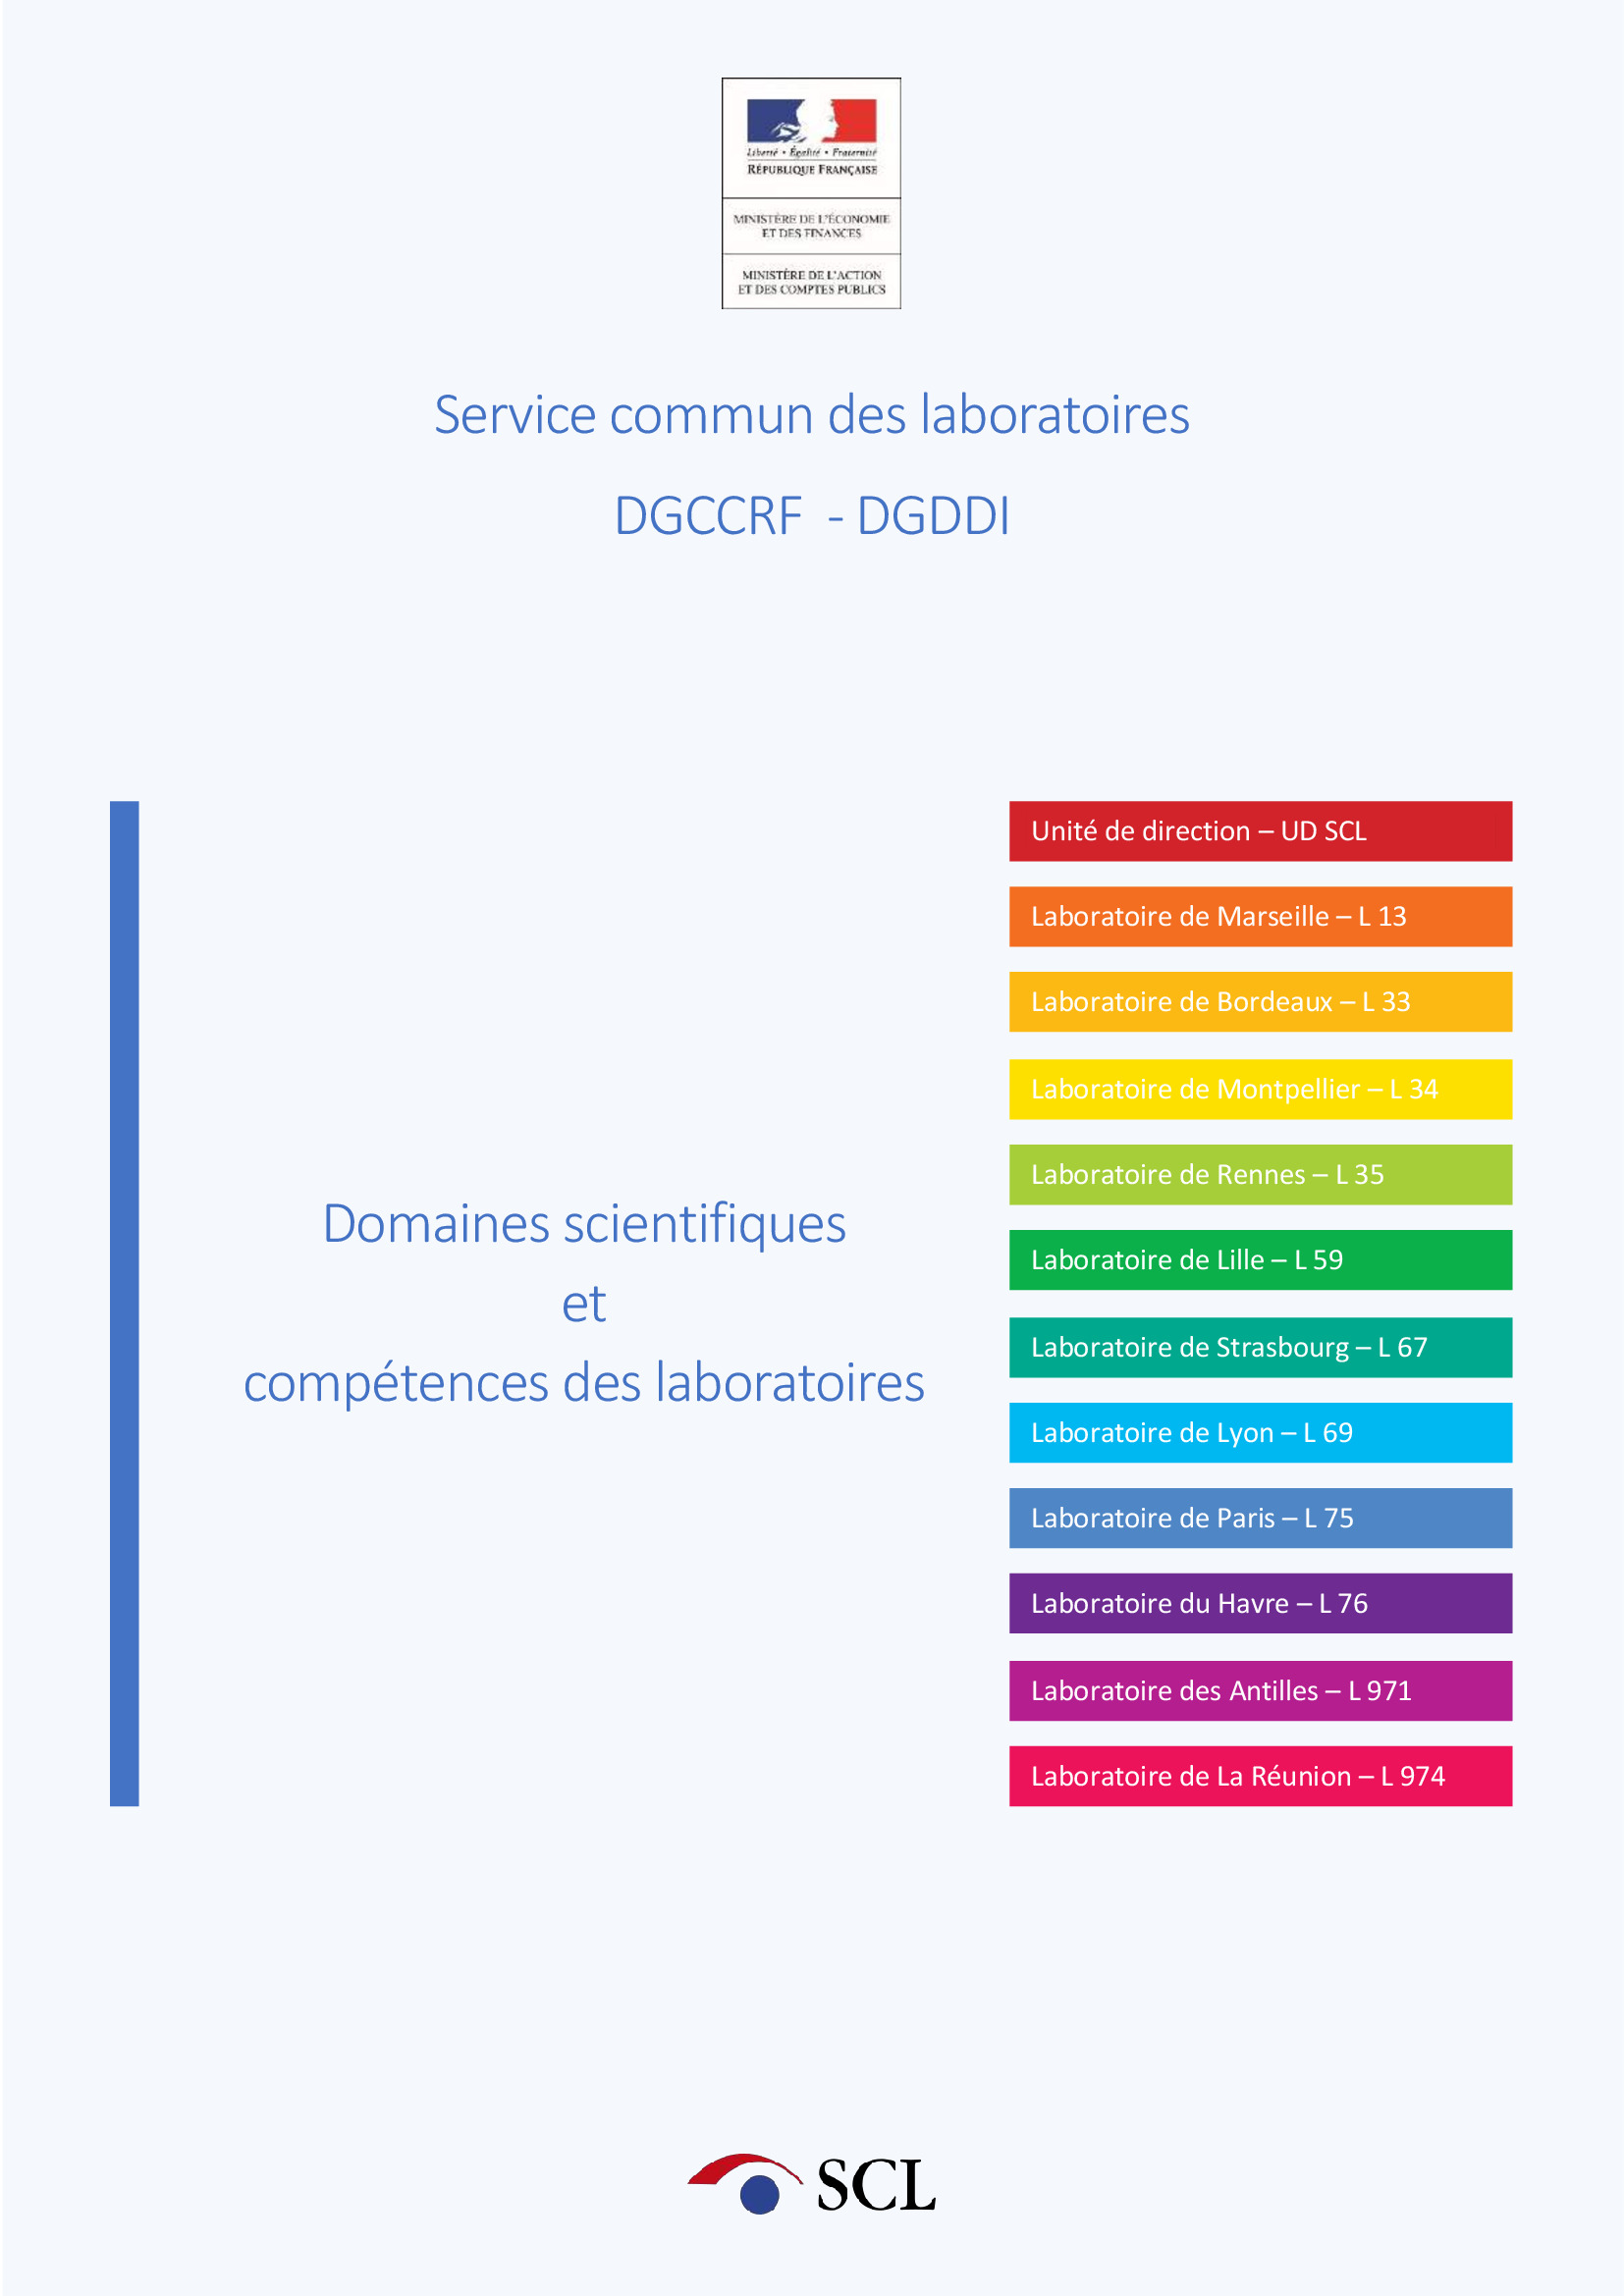 Image de Catalogue des prestations du SCL